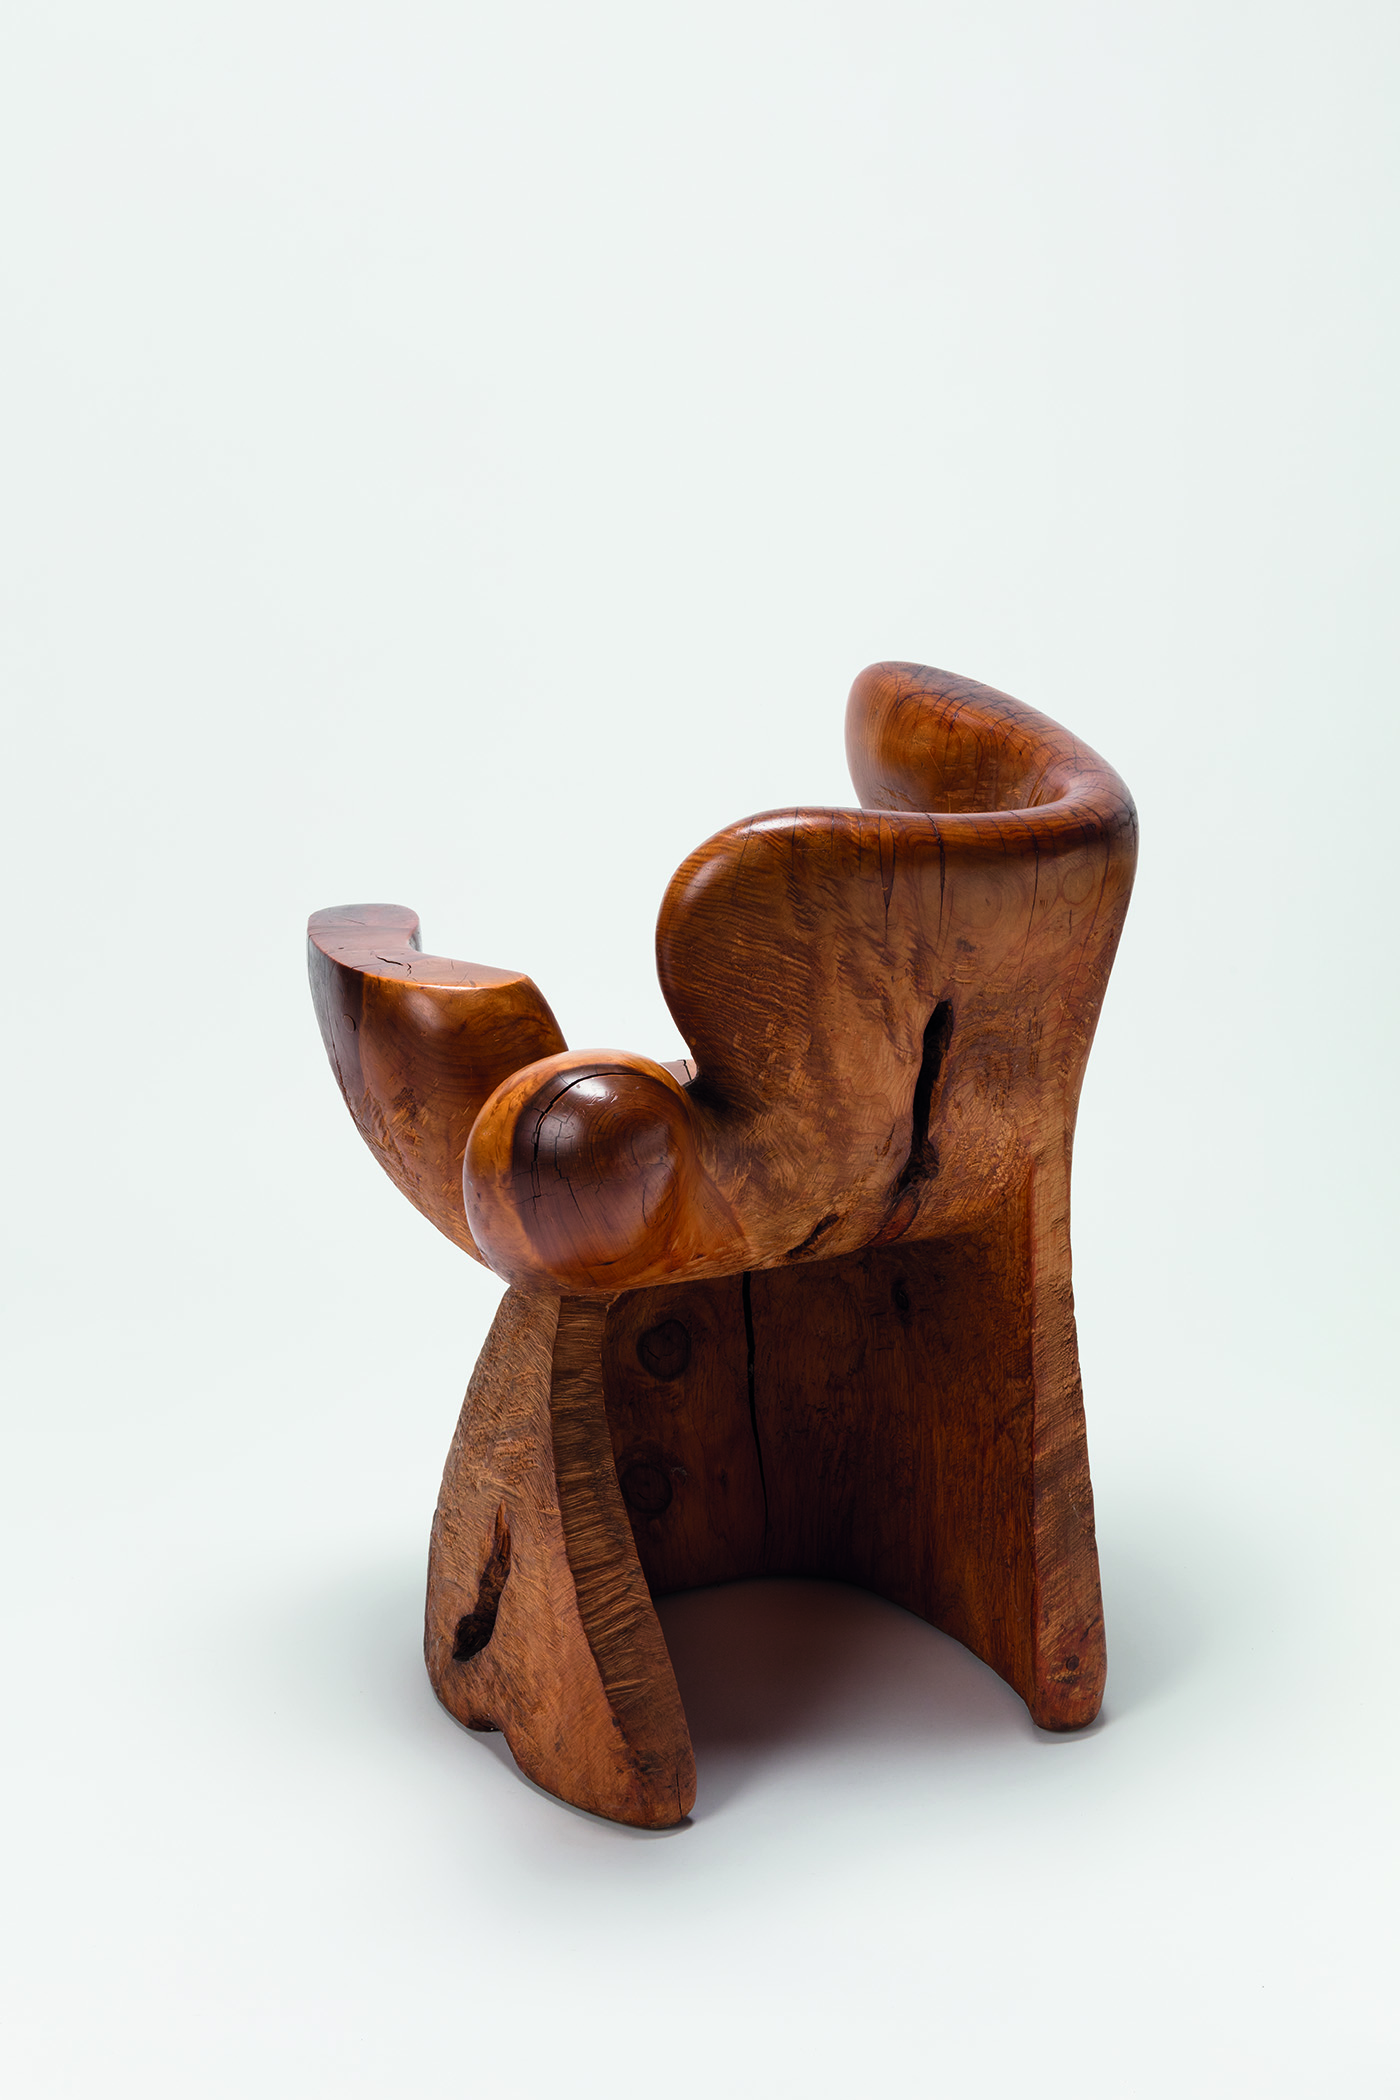 Untitled , 1973–74  Cypress  31 x 23 x 22 inches  78.74 x 58.42 x 55.88 cm  Collection Gordon Ashby